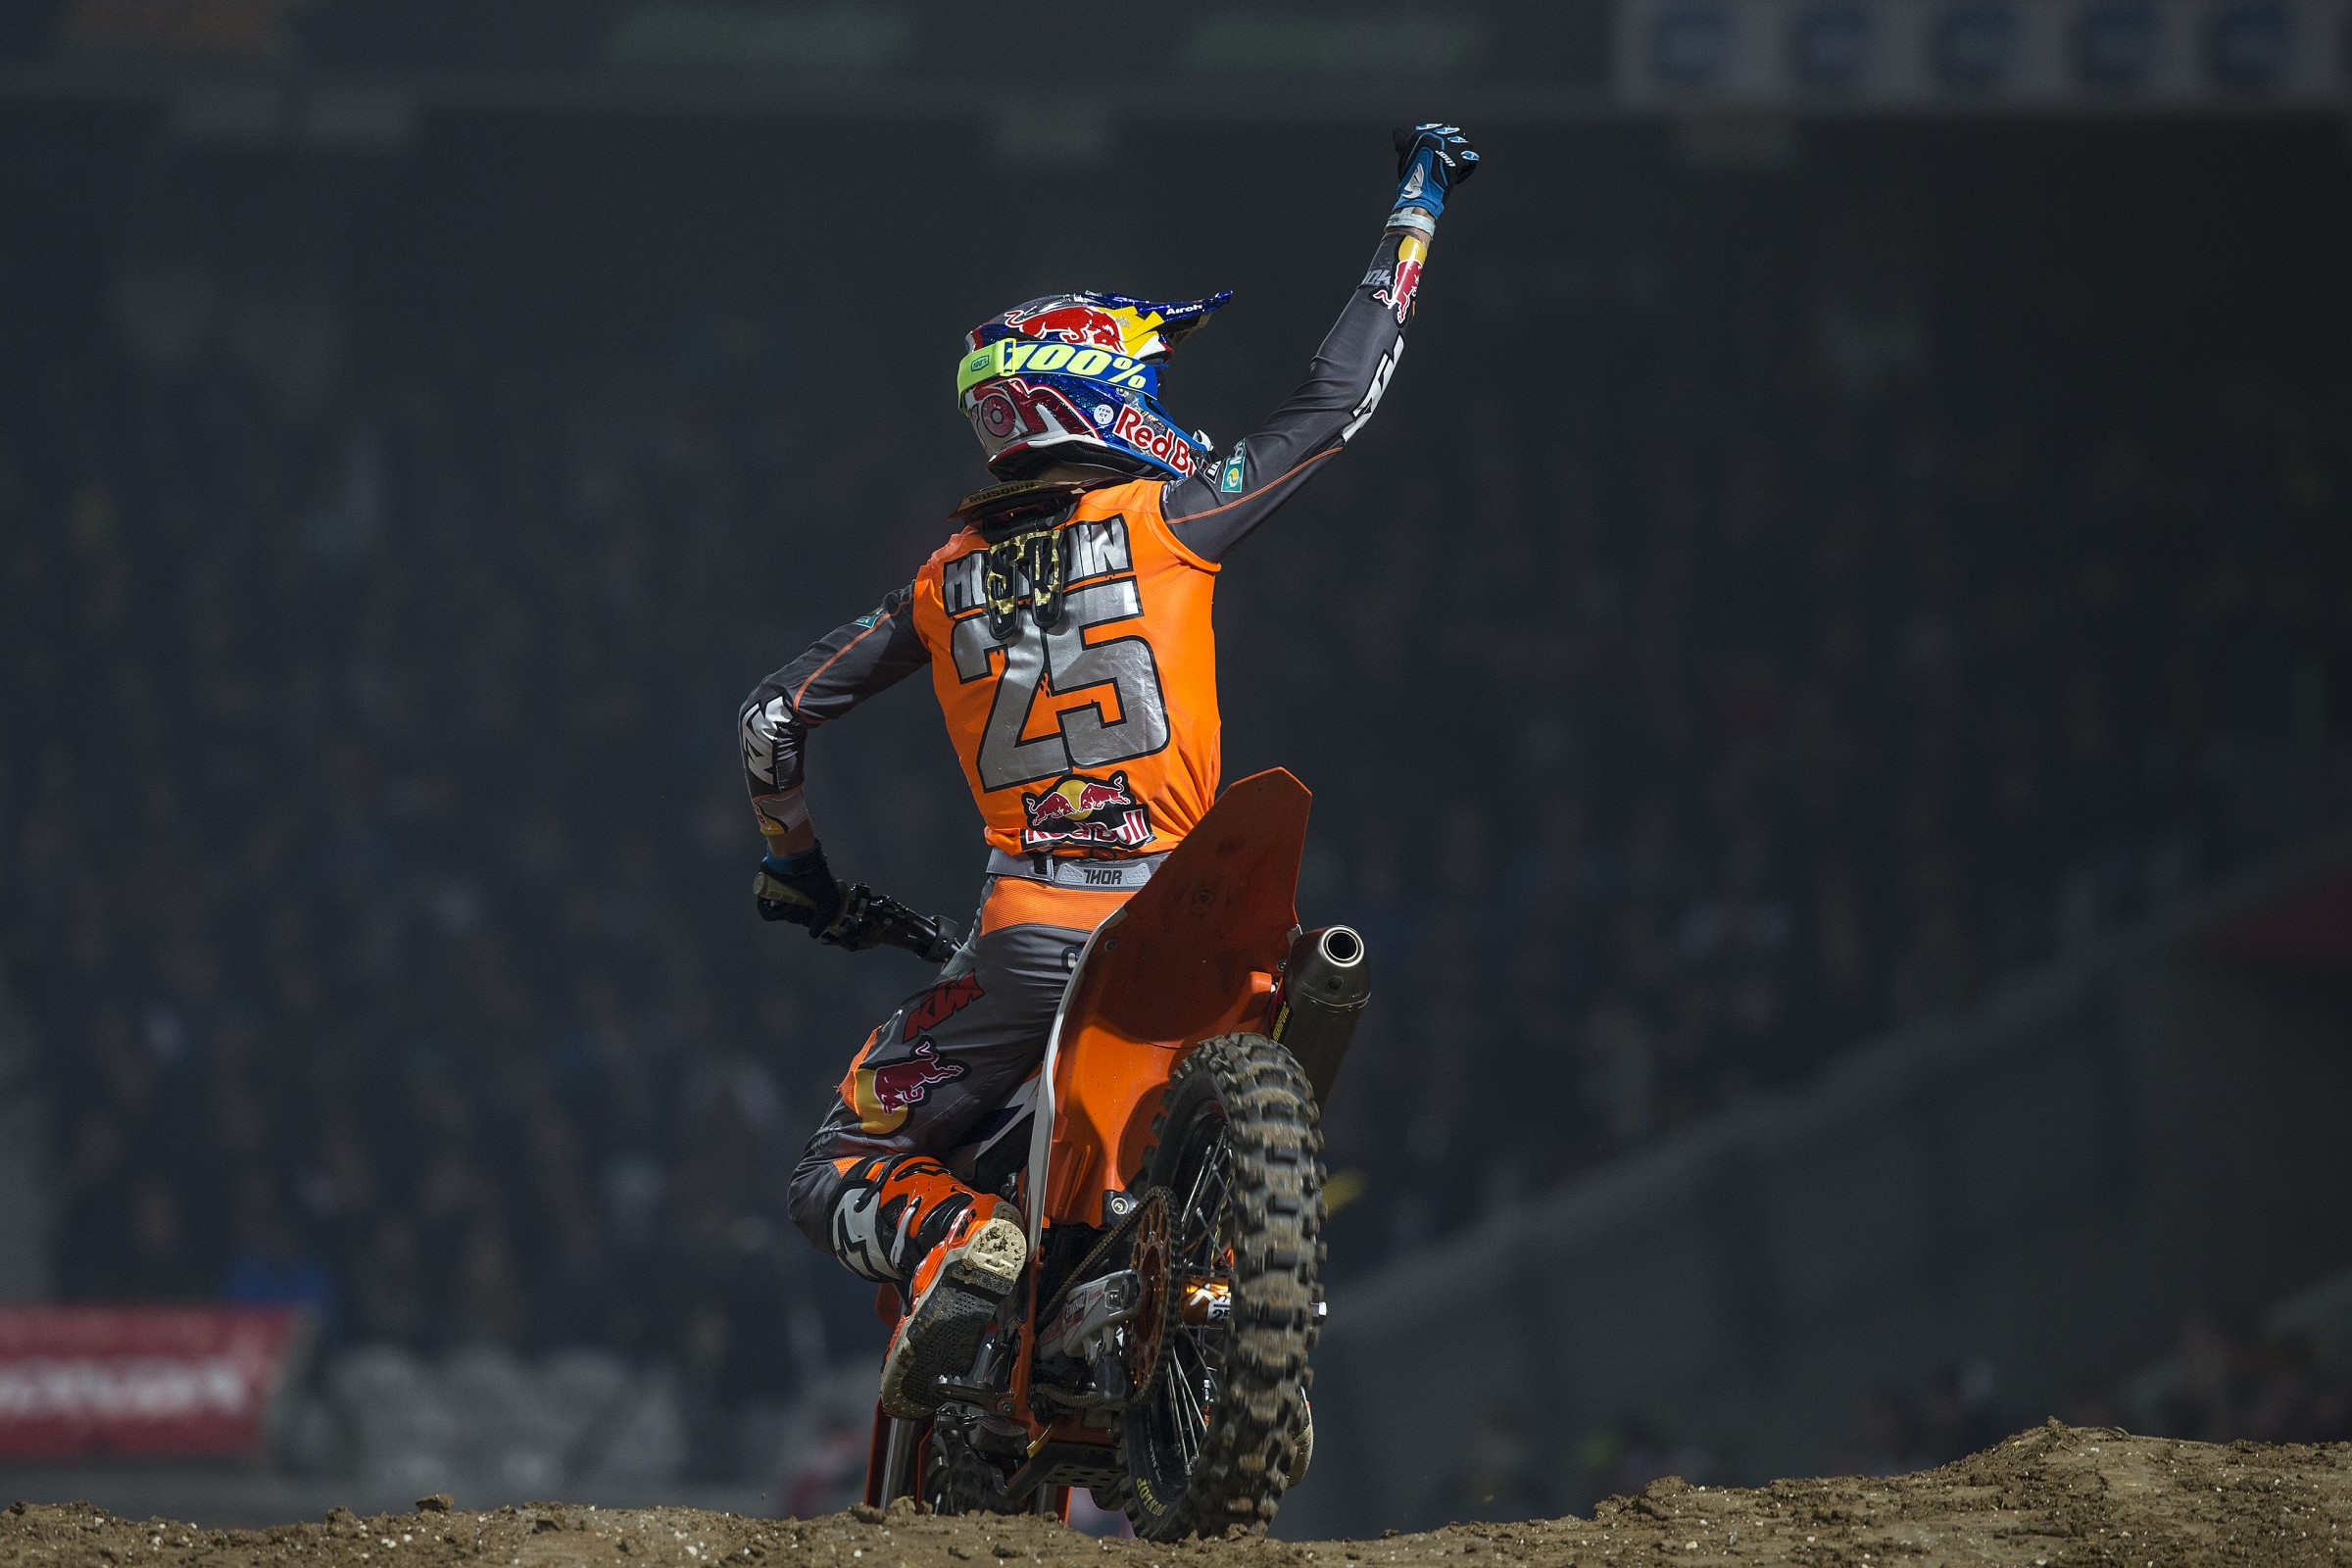 Can Musquin go back-to-back this weekend?